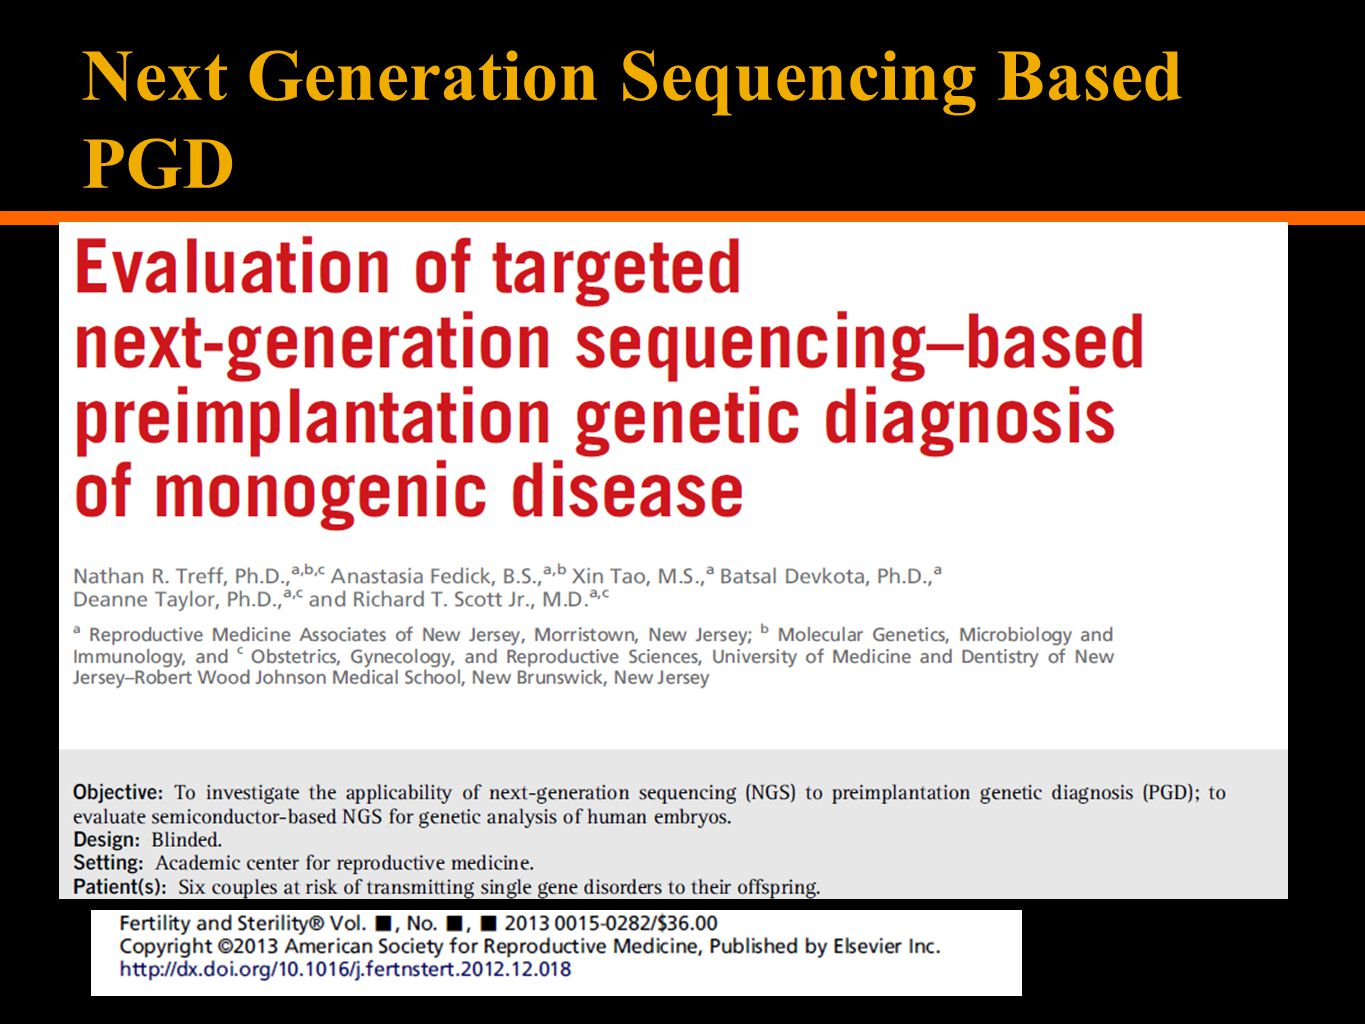 Next Generation Sequencing Based PGD